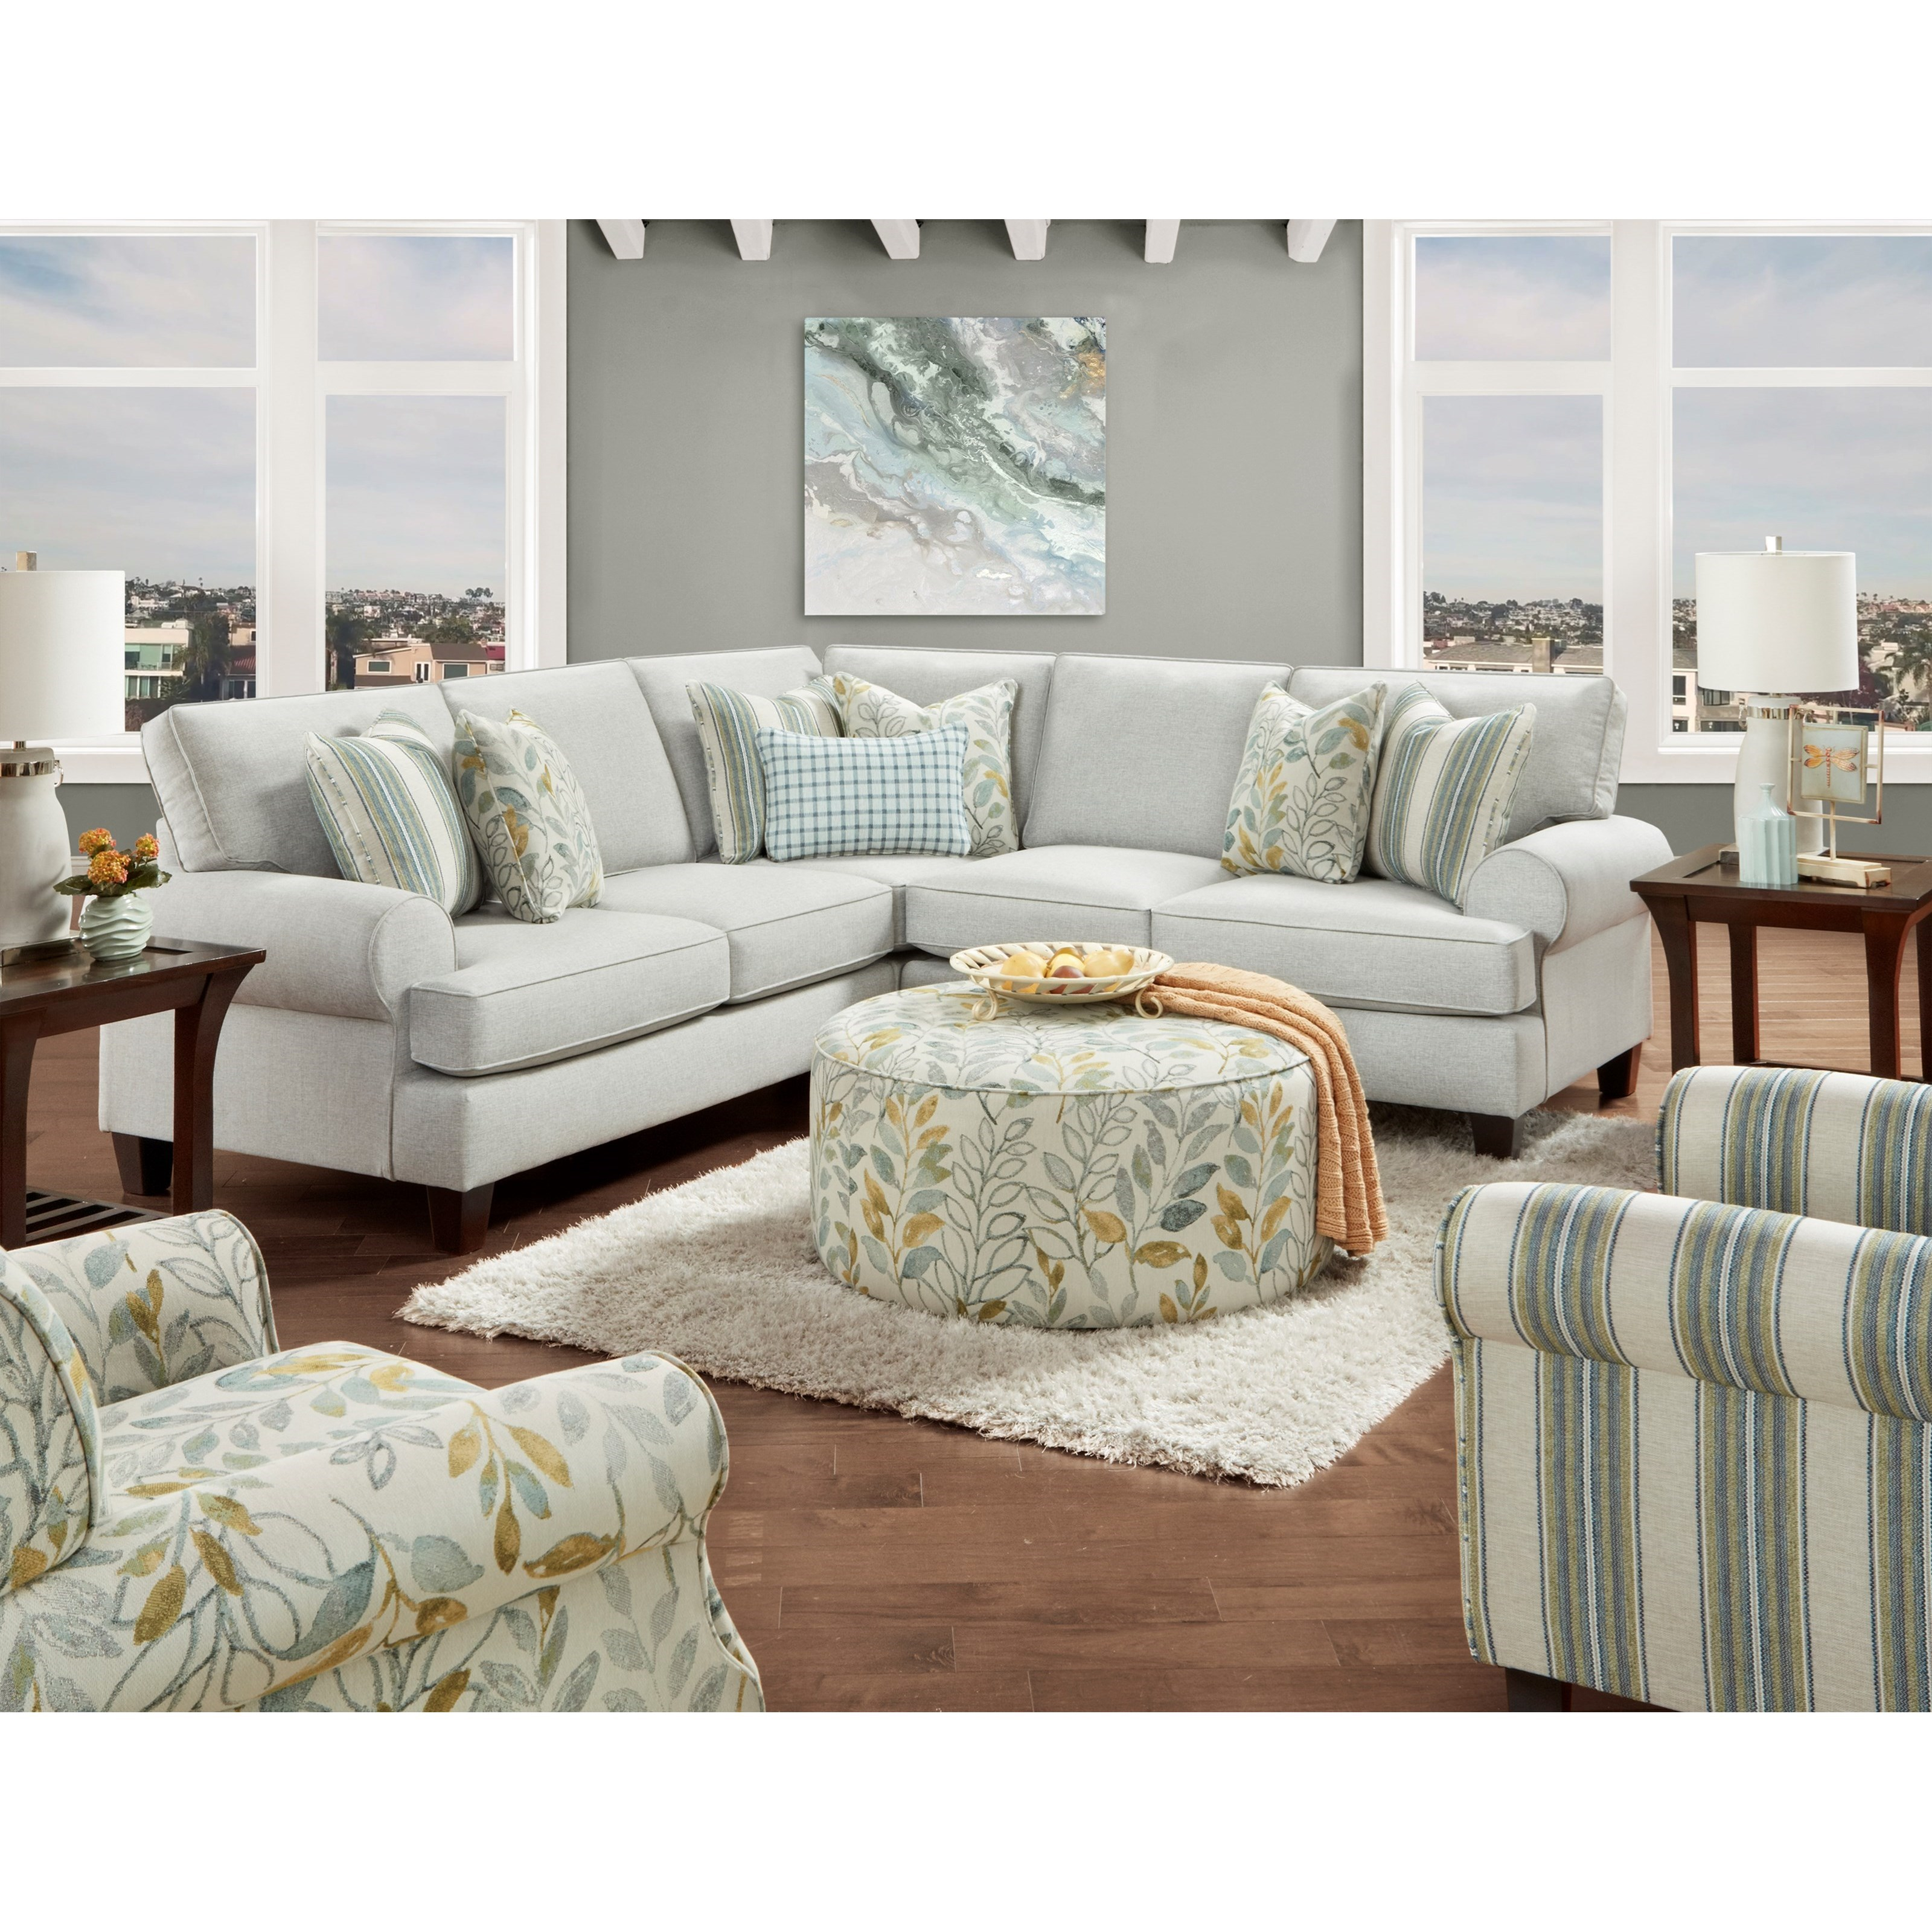 4200 Sectional by Fusion Furniture at Prime Brothers Furniture